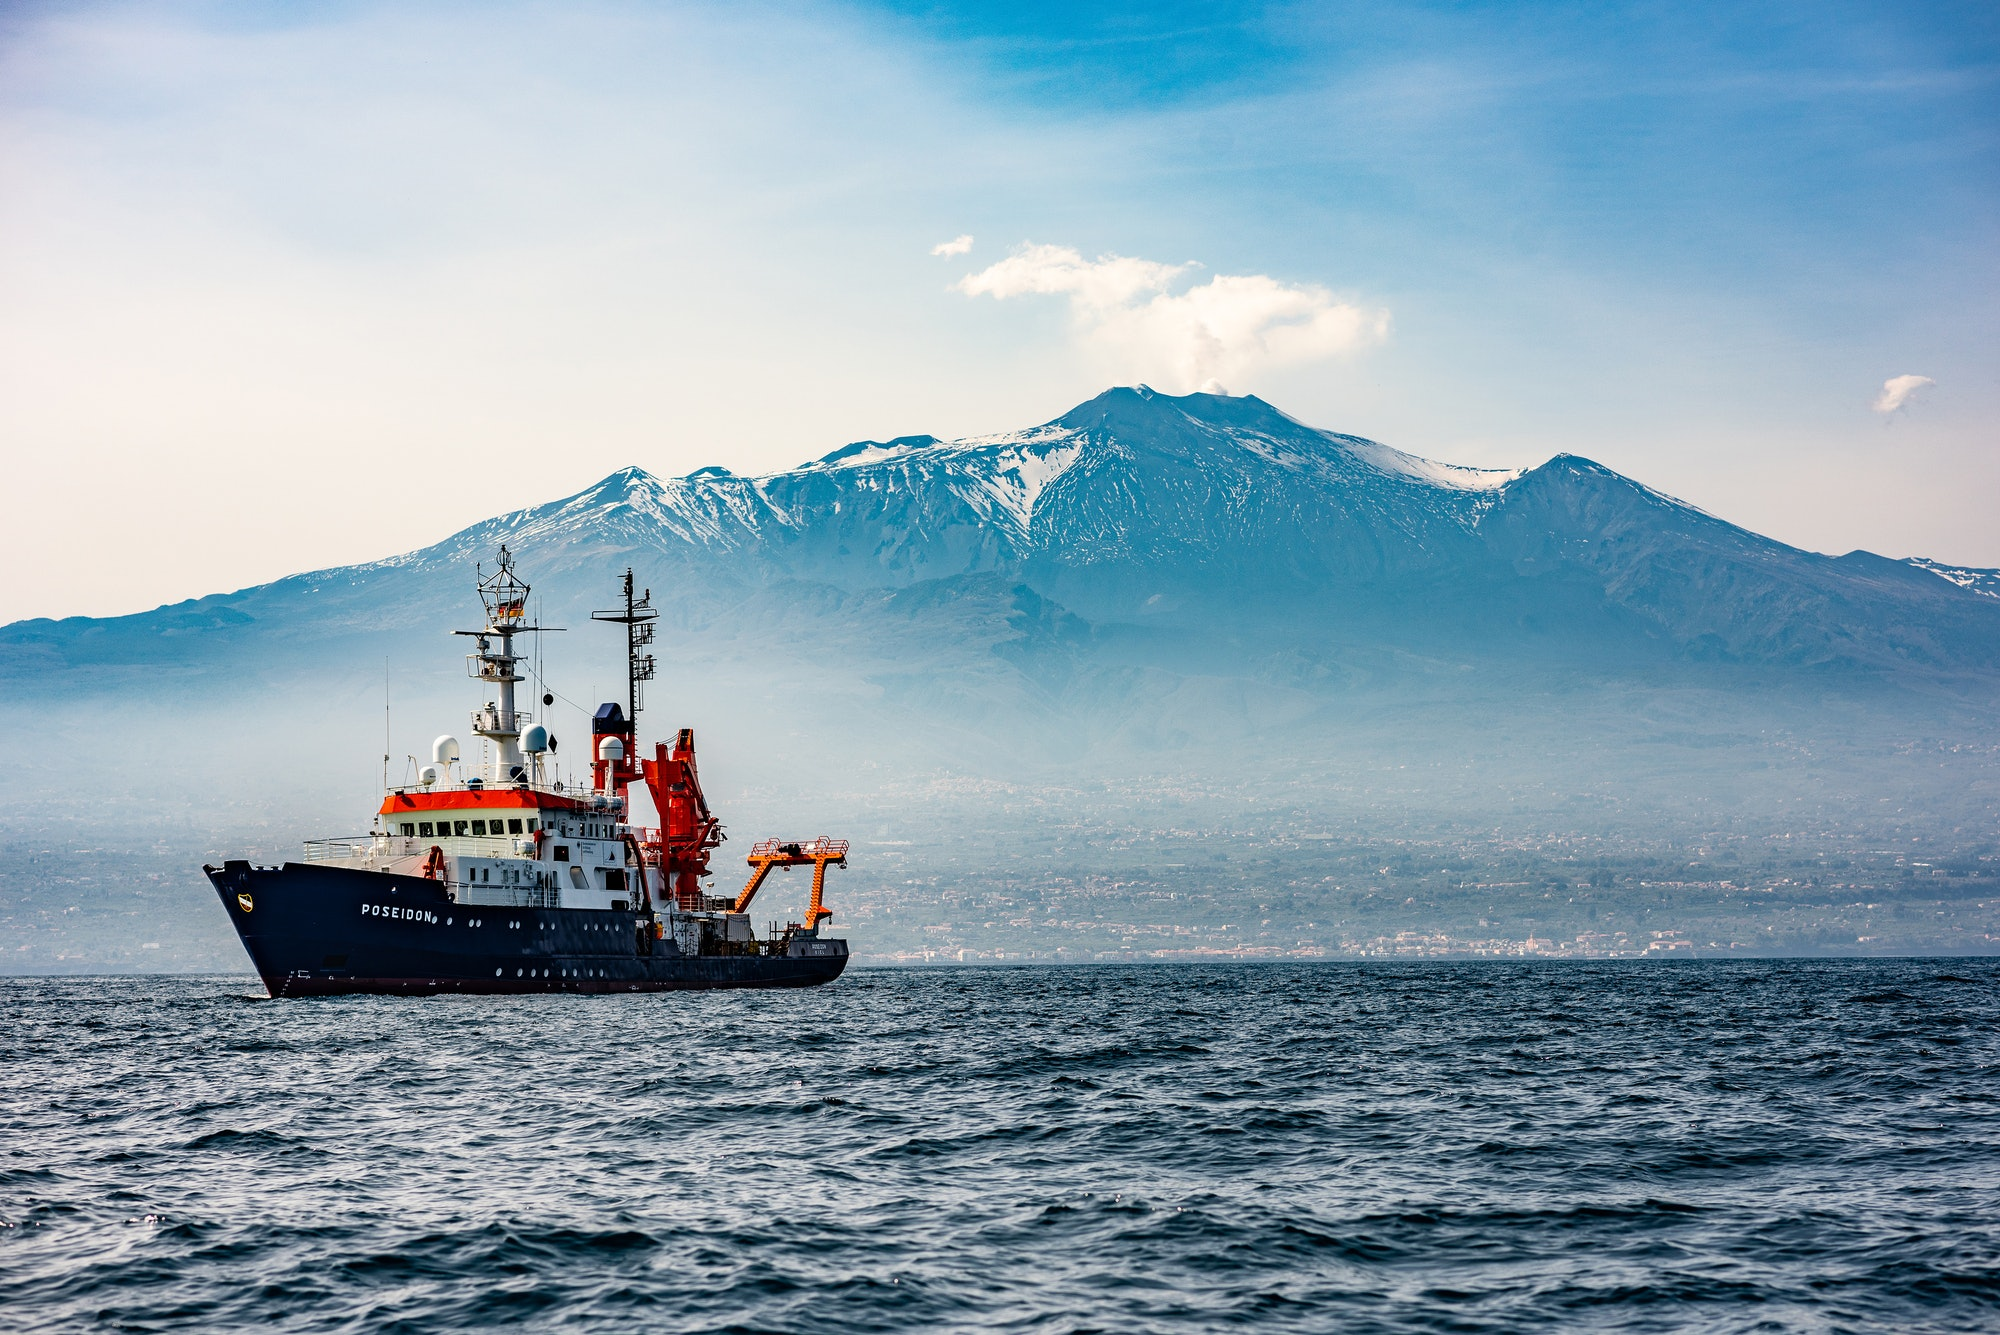 Research Vessel Poseidon deploys transponders across the seafloor at Mount Etna's flank to detect changes in the seafloor geology.